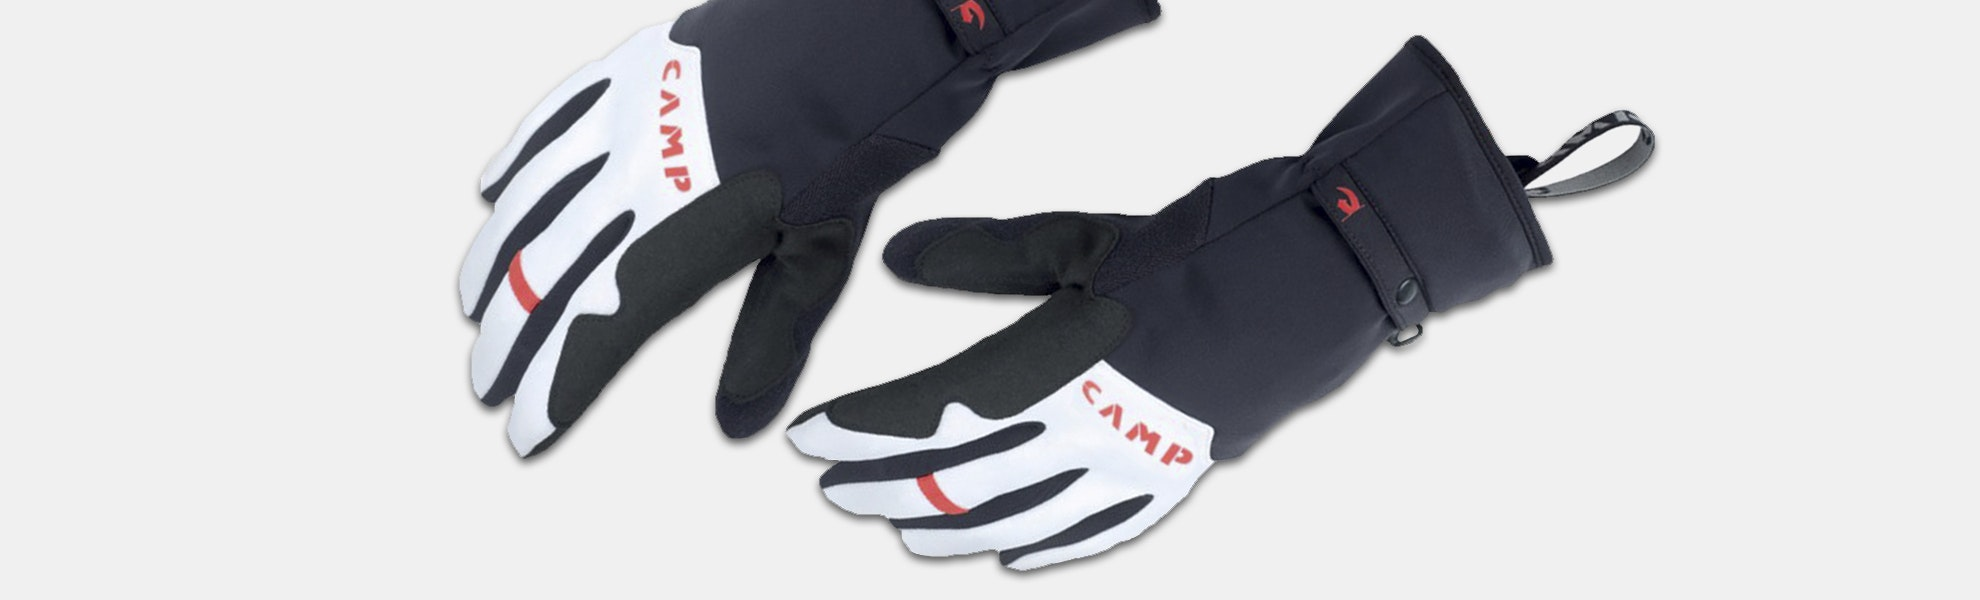 CAMP G Comp & GeKO Winter Mountaineering Gloves